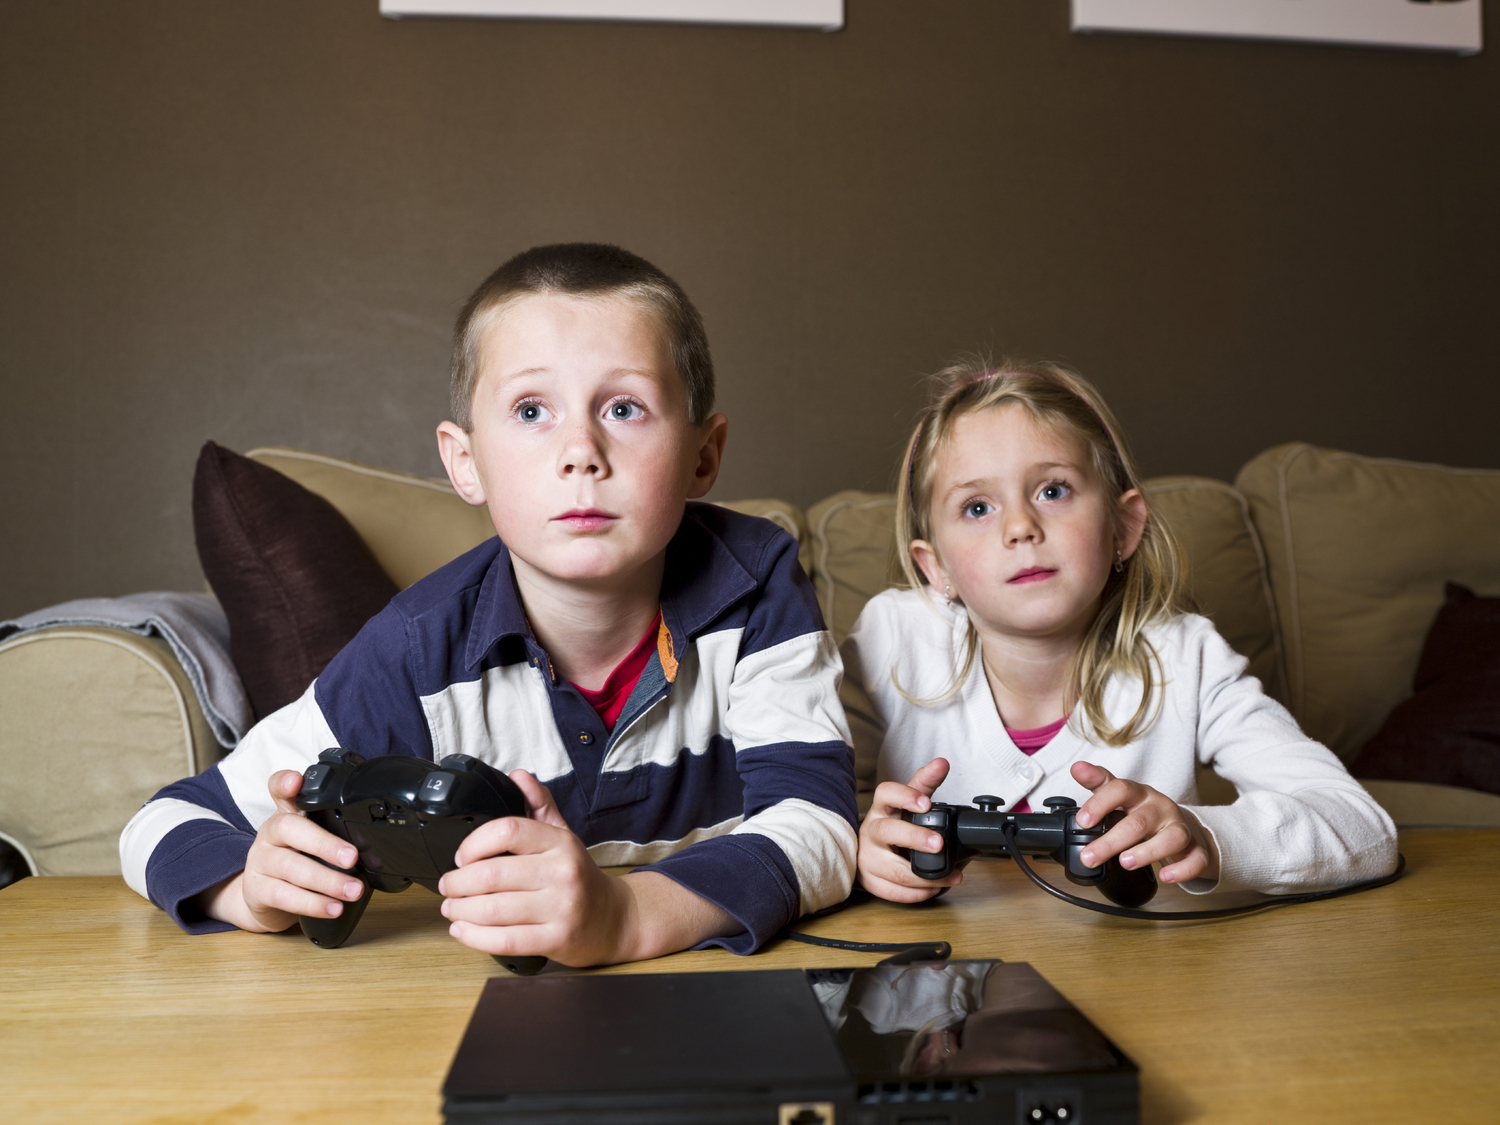 video games and children can it Yes, games can be addictive in some cases but, no, there isn't any meaningful evidence that video games lead to abhorrent or violent behavior.